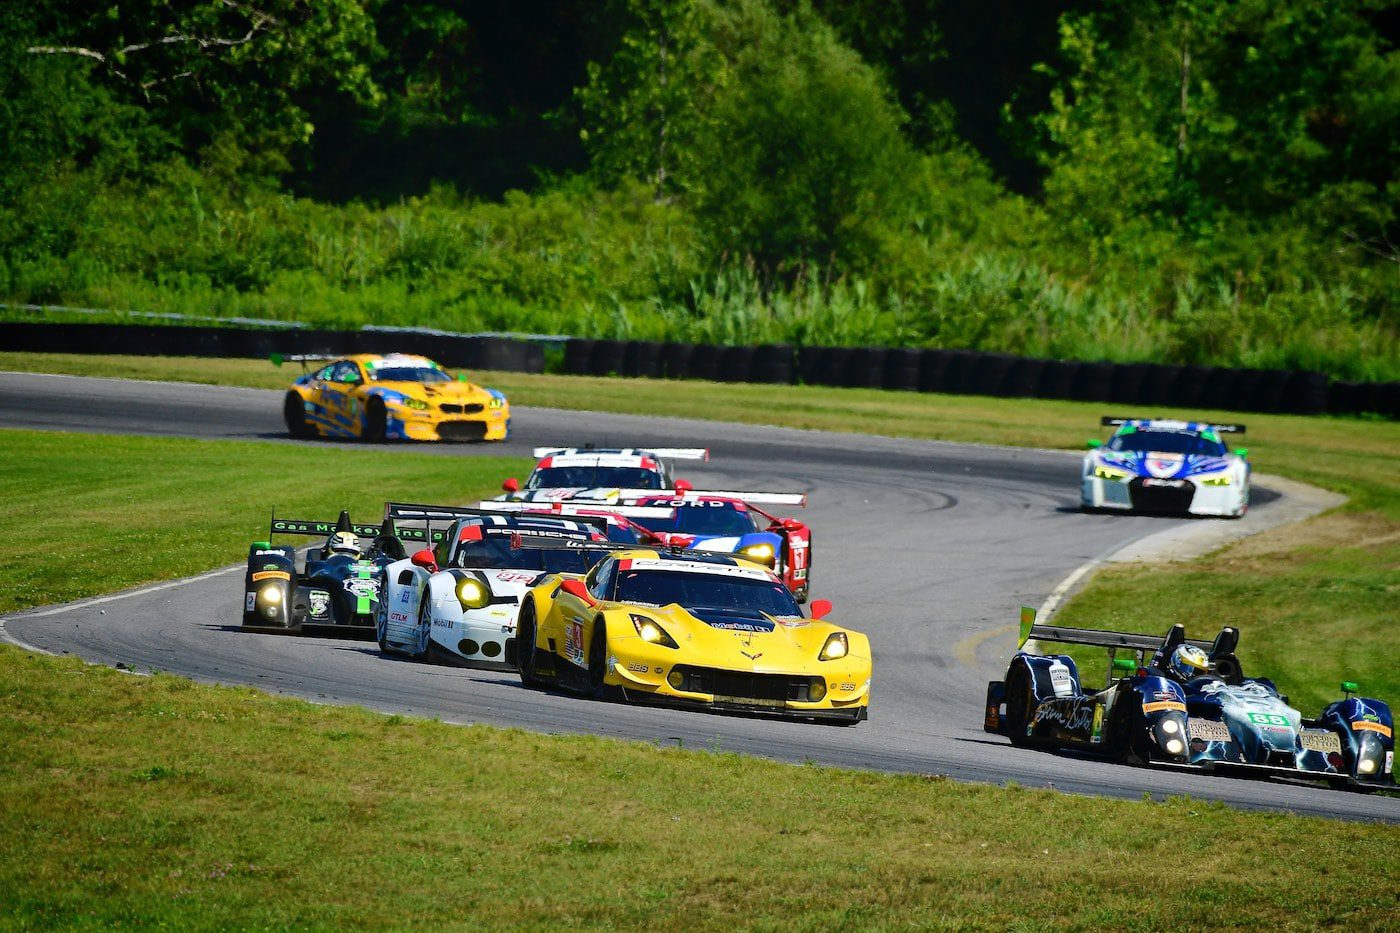 Jan Magnussen / Corvette Racing, Lime Rock Park 2016 - foto: Janmagnussen.dk